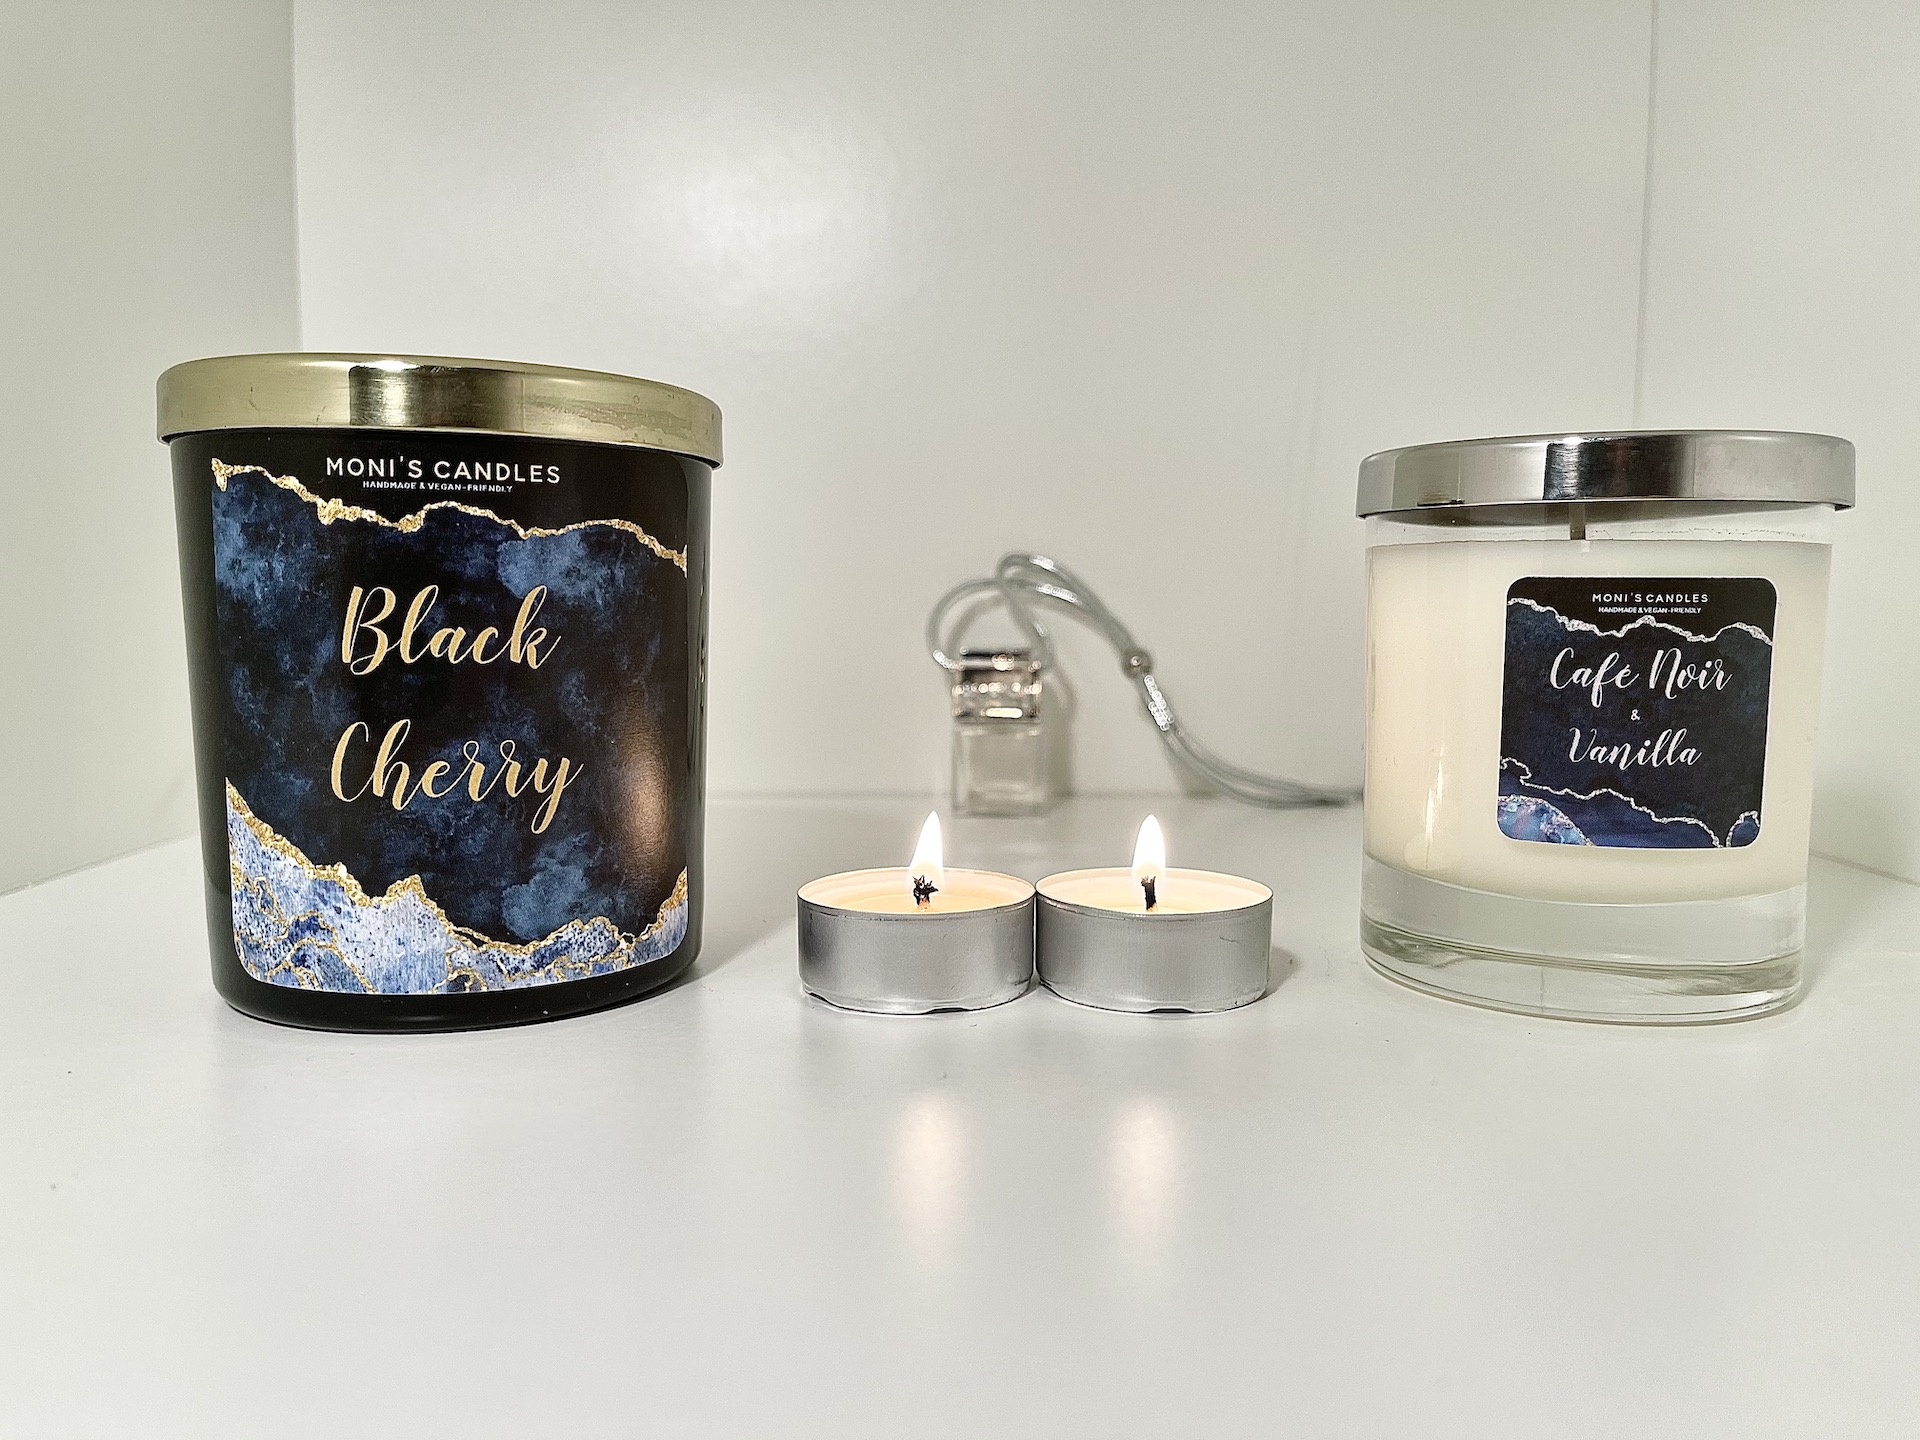 Monis Candles